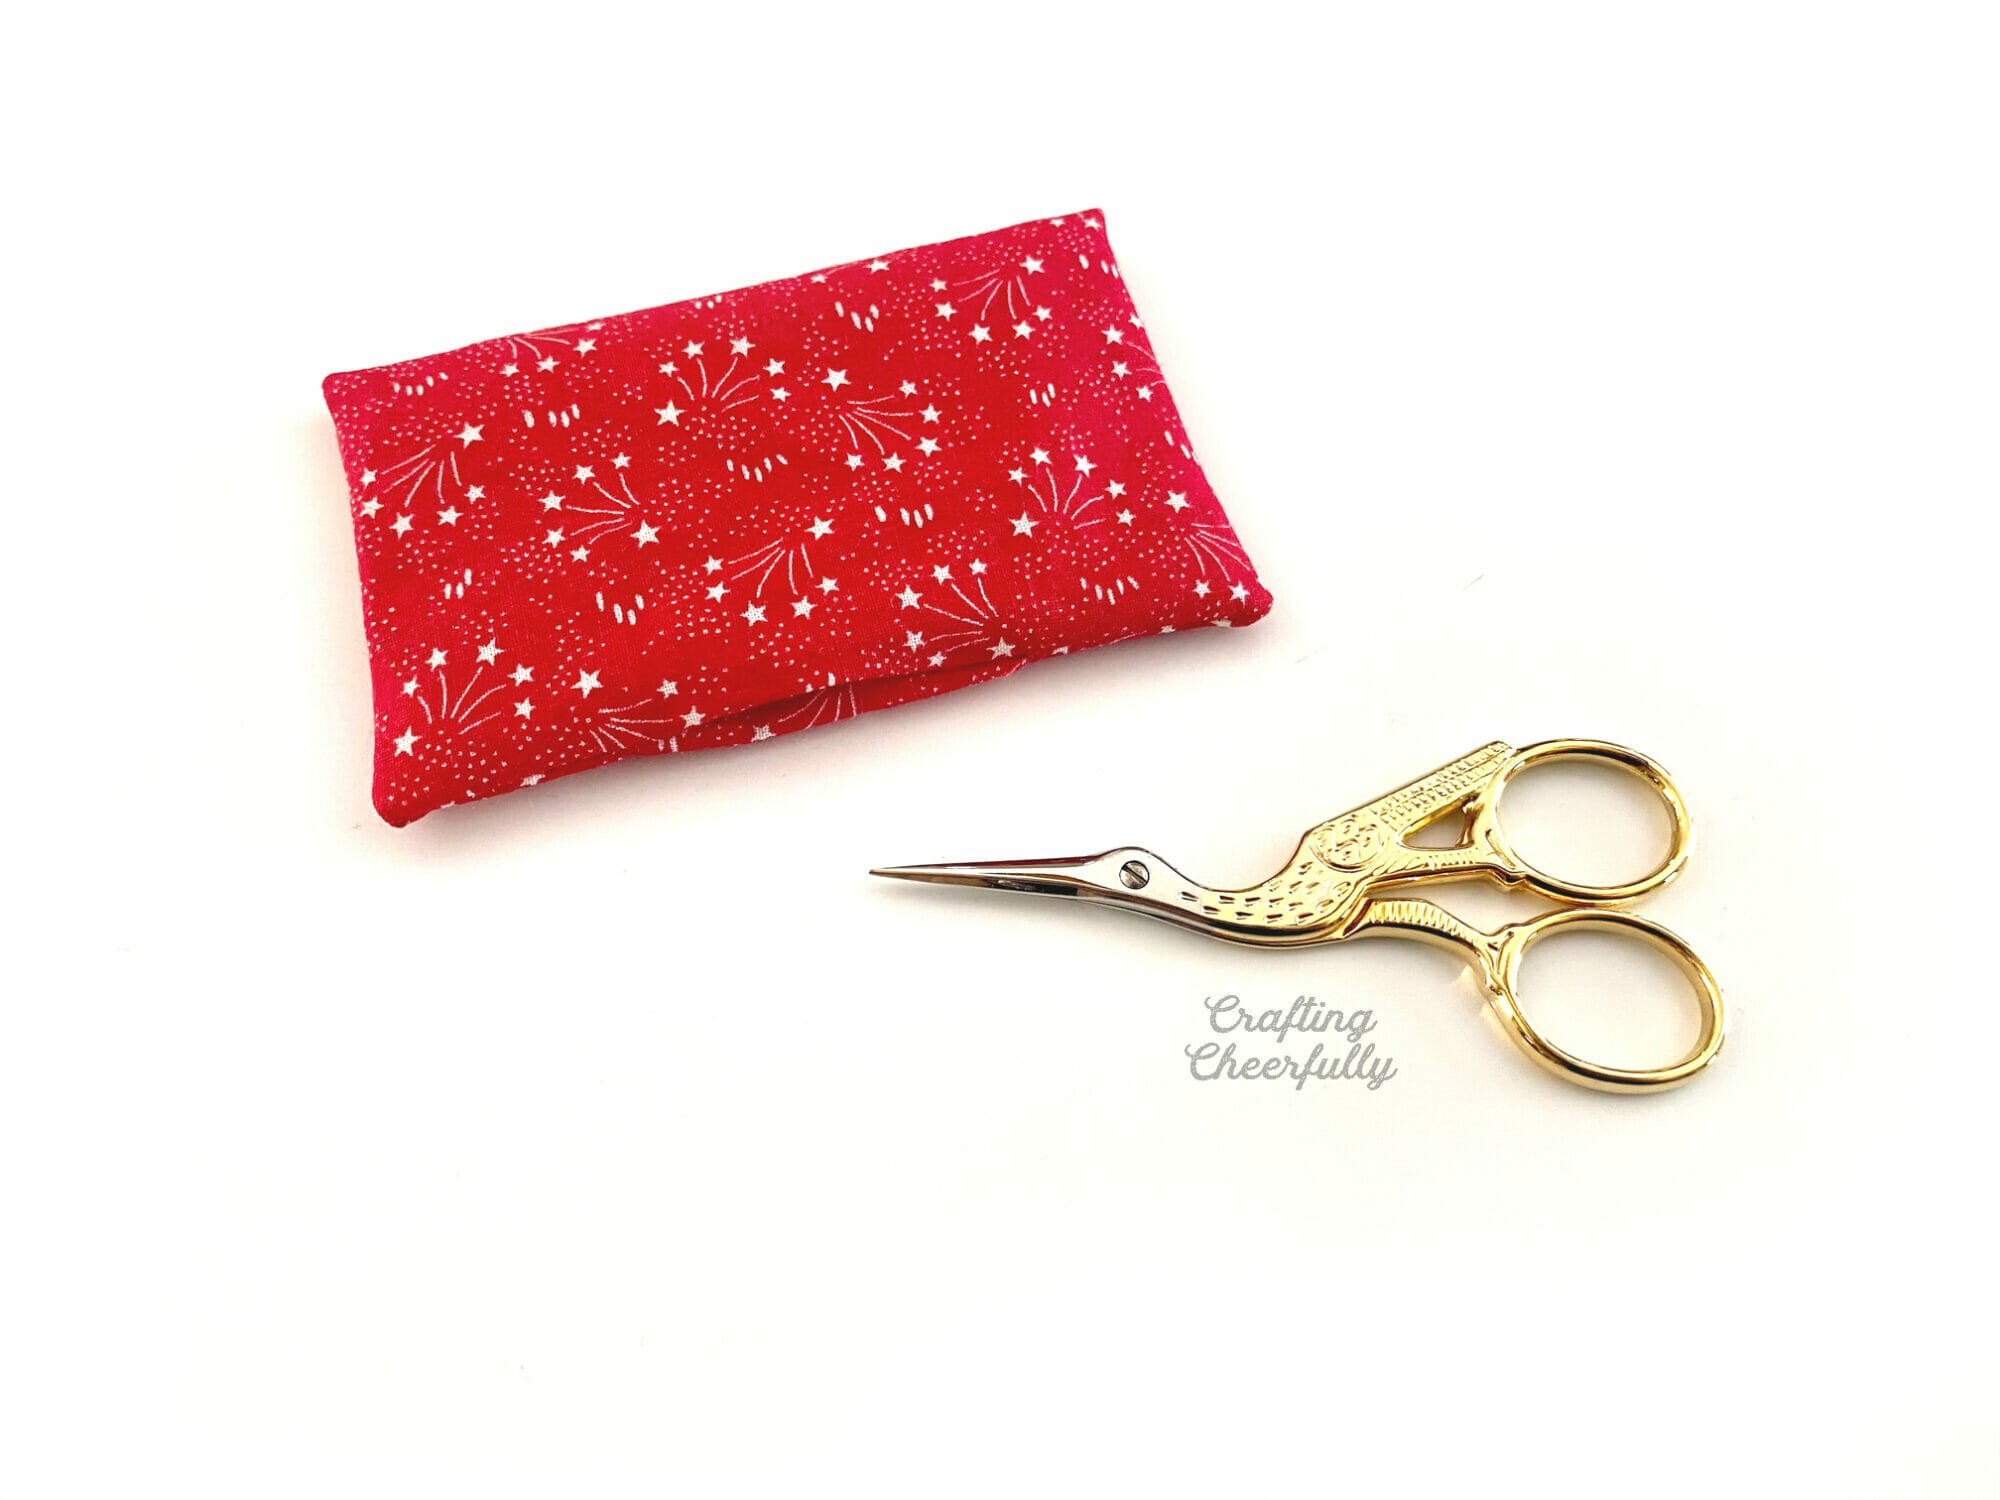 Red pillow is turned right side out with a visible opening. Laying next to a gold stork scissors.